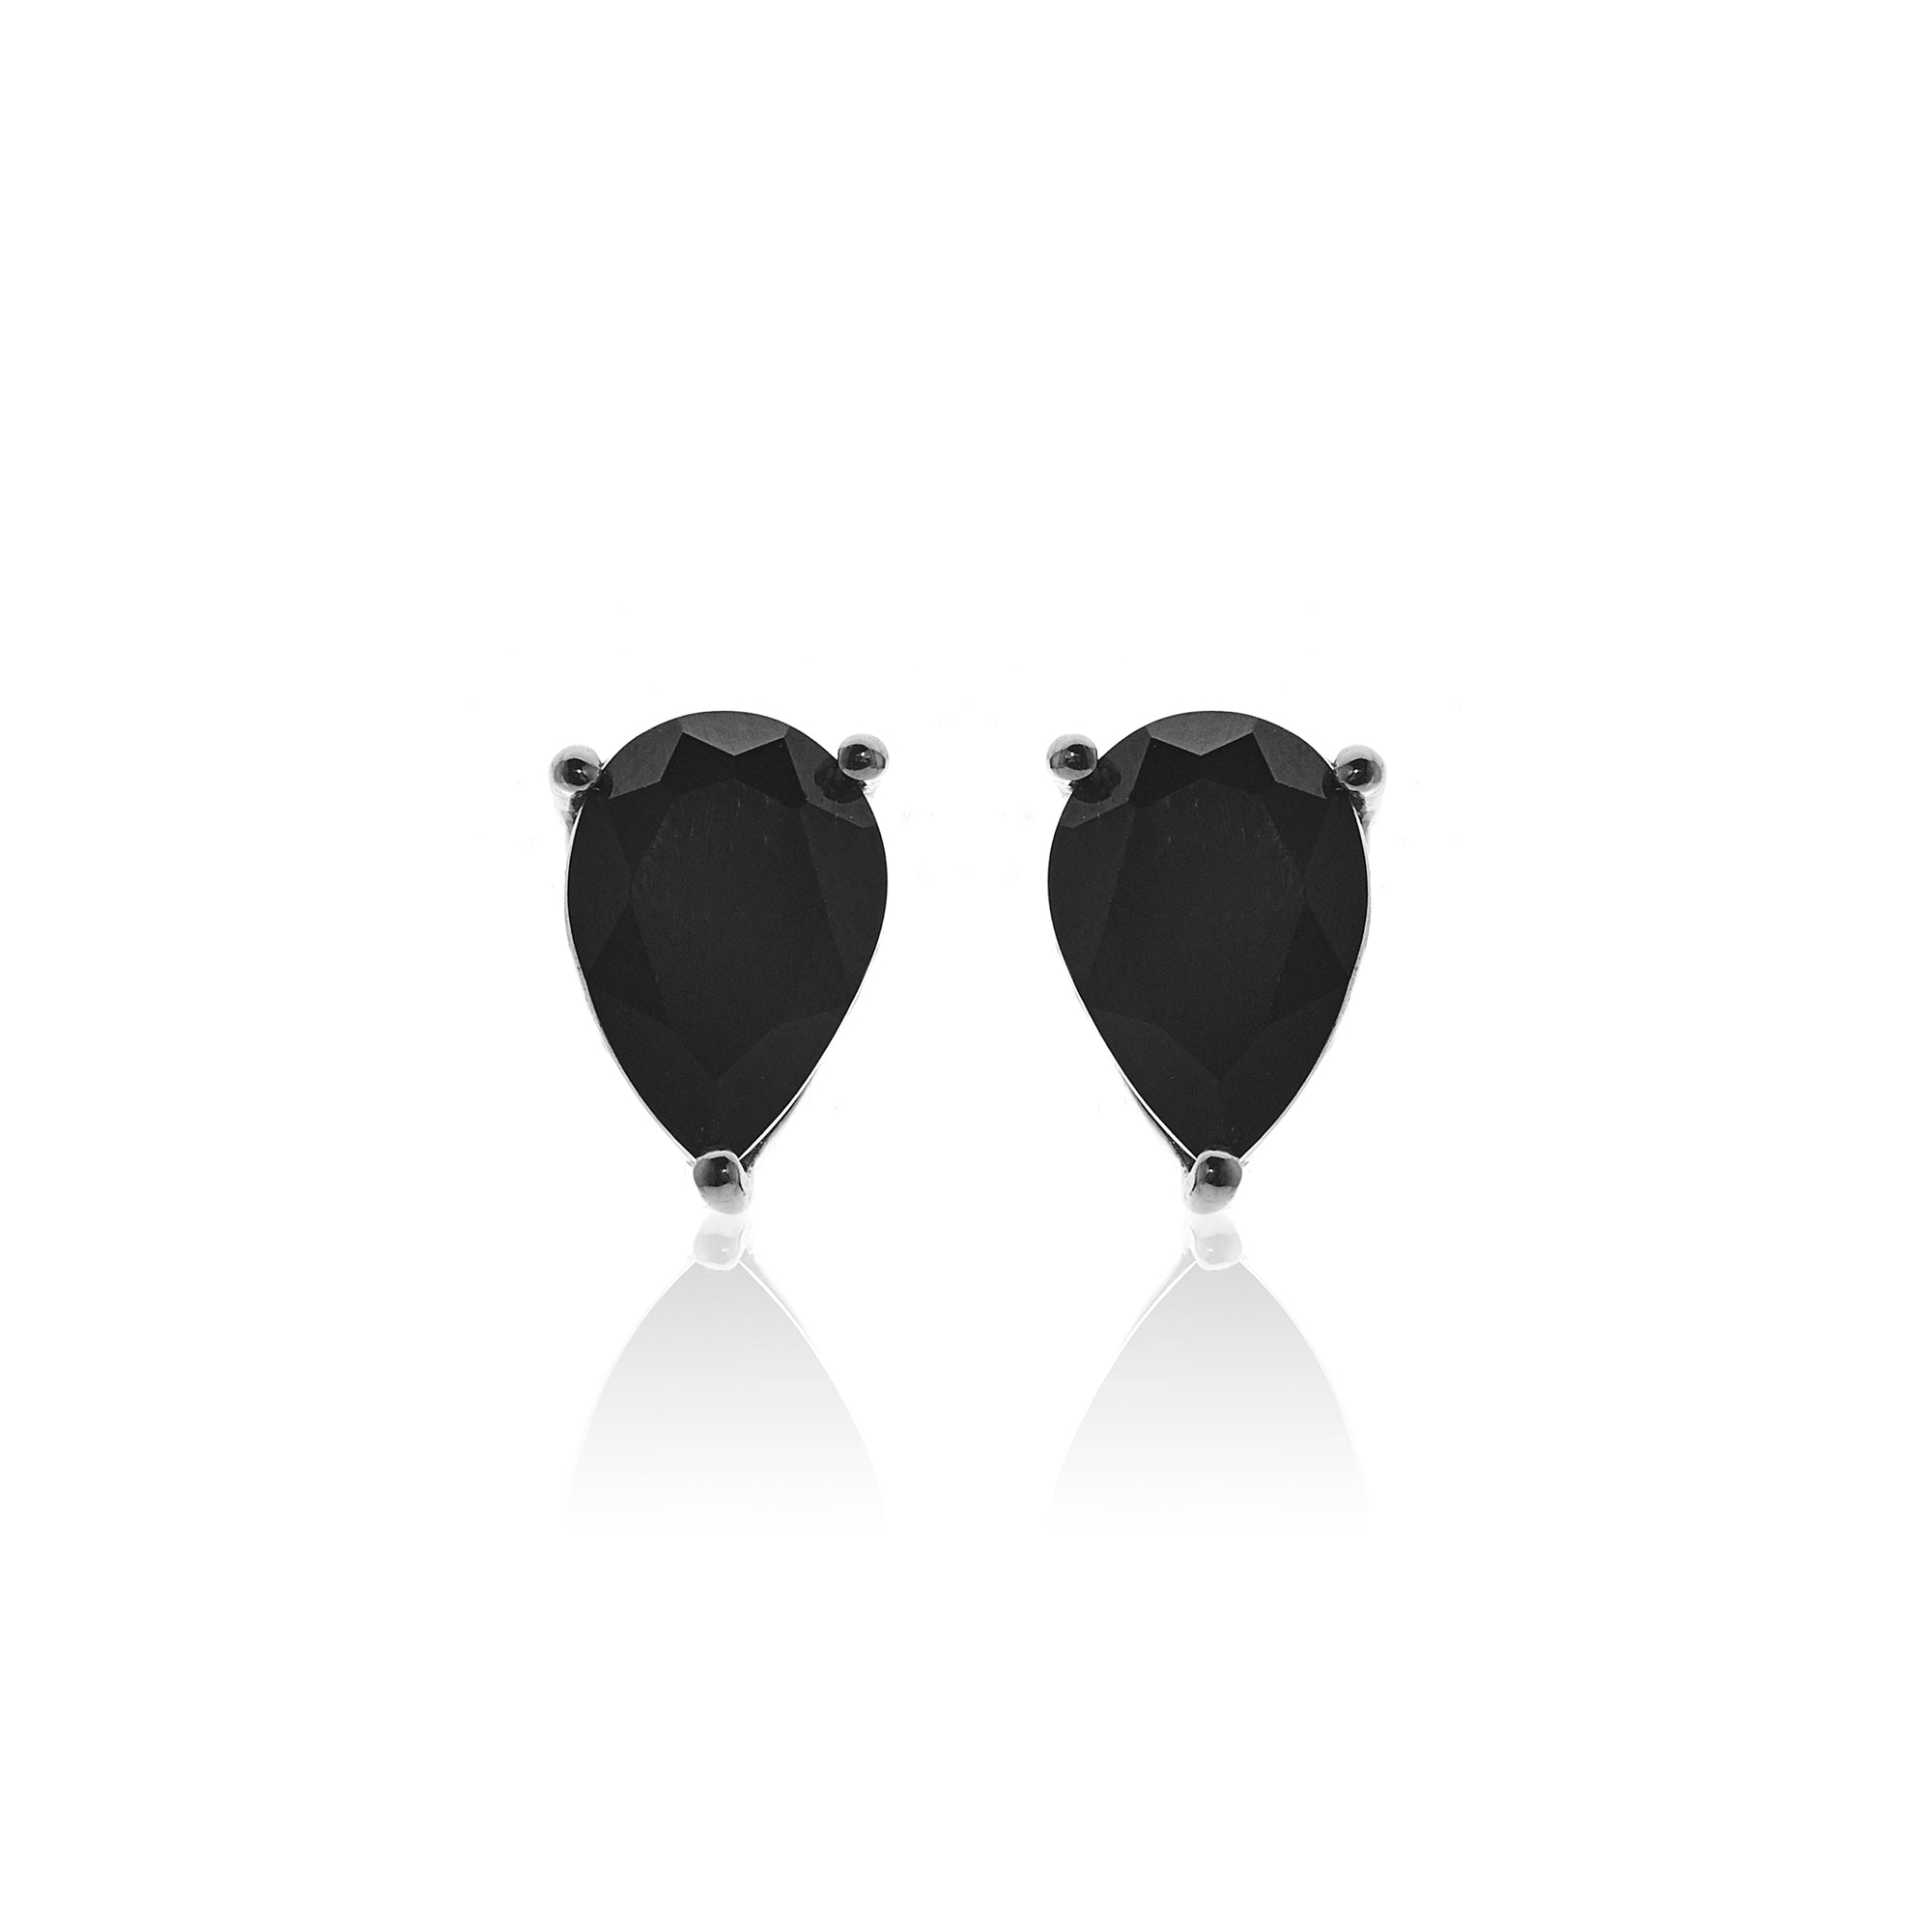 Silk&Steel Jewellery Diva Earrings Black Spinel and Silver From Aria Collection